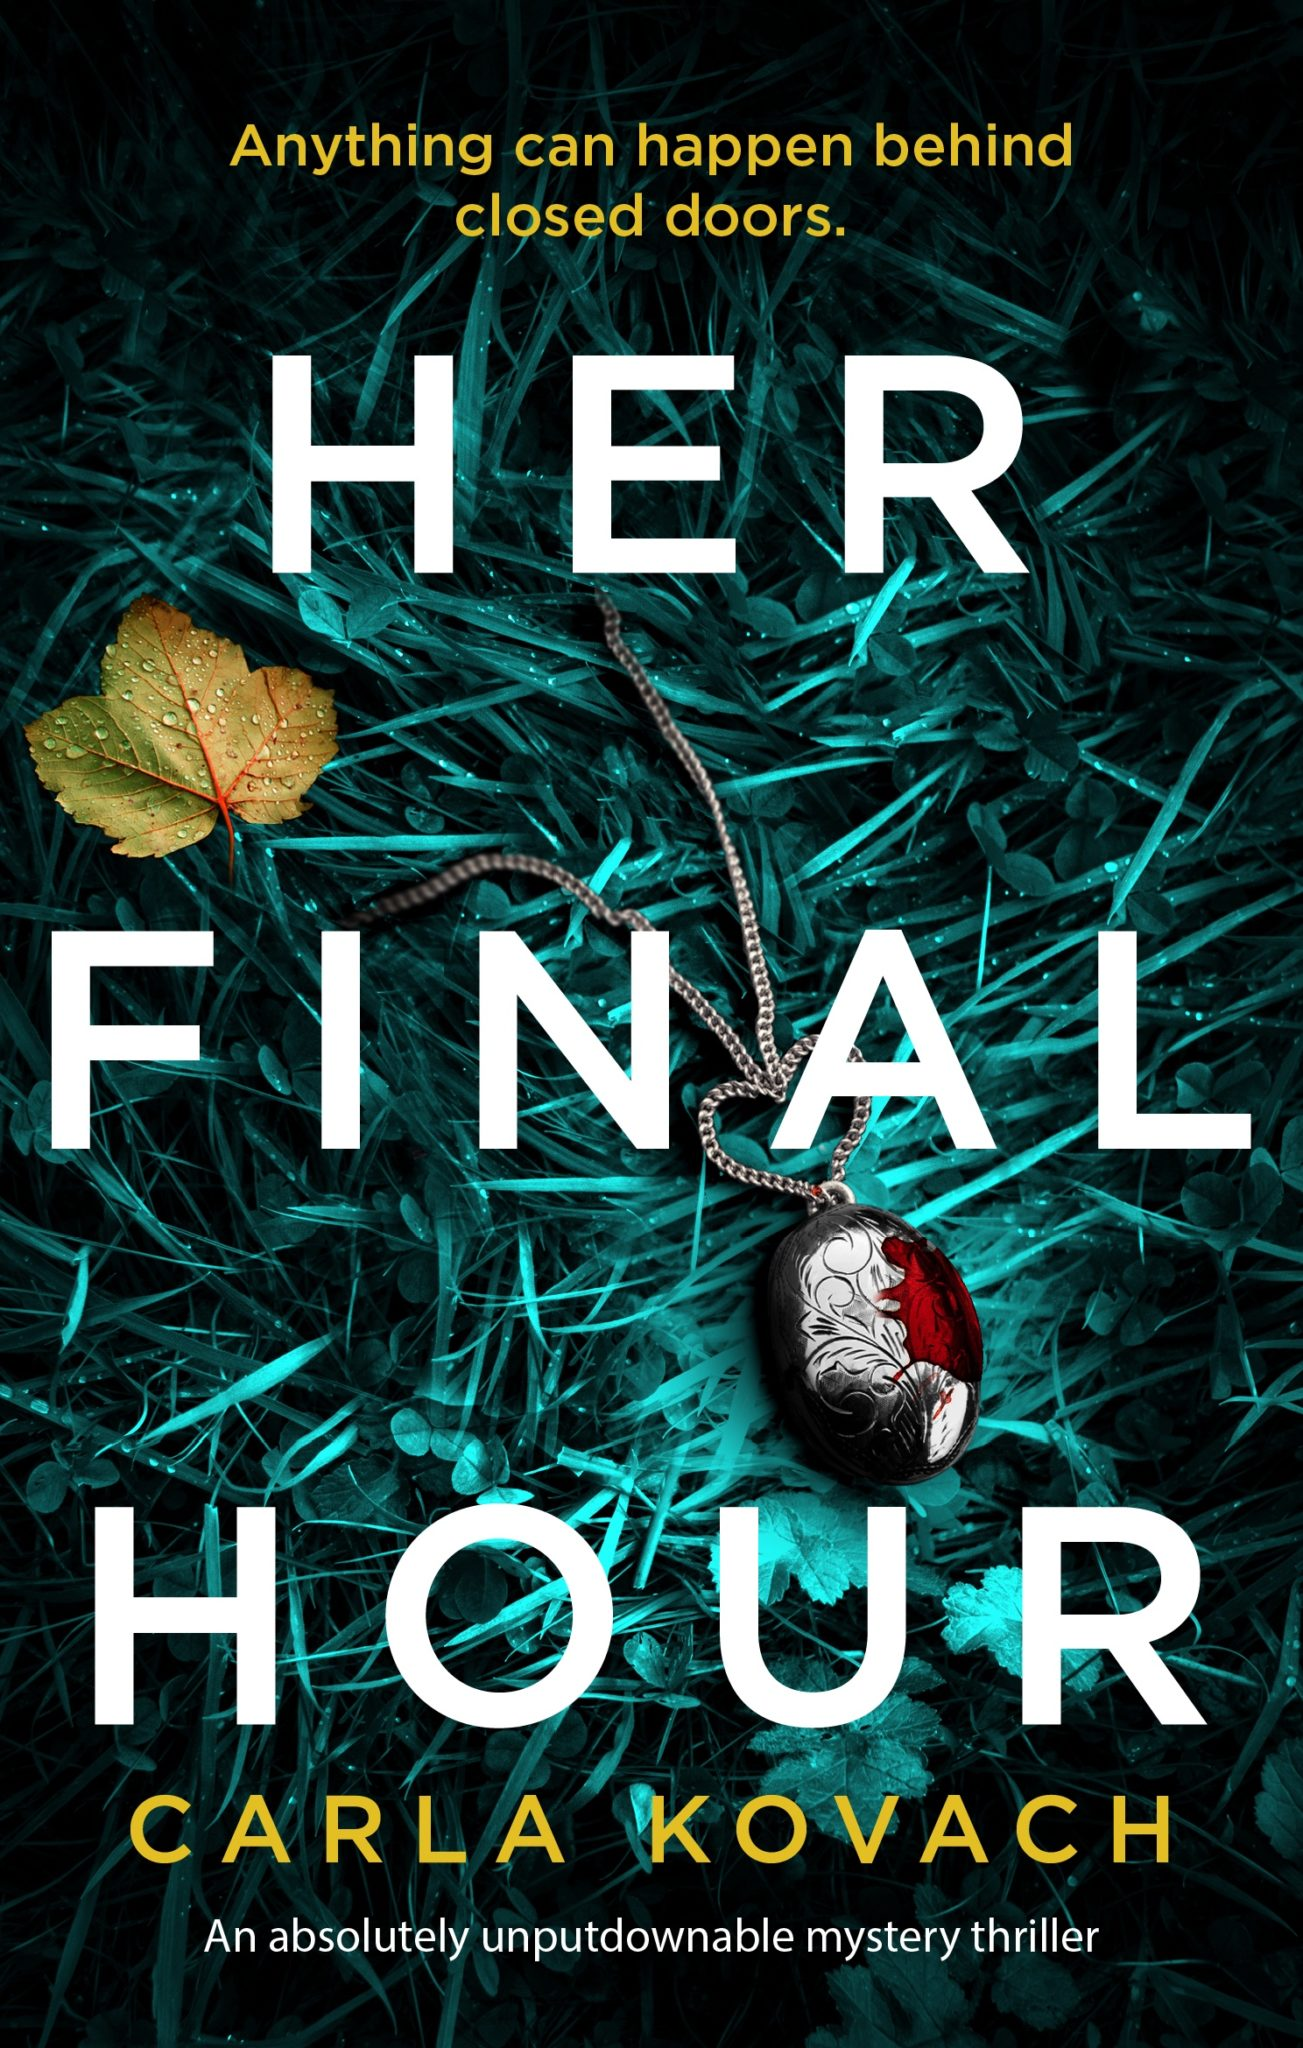 Her Final Hour by Carla Kovach